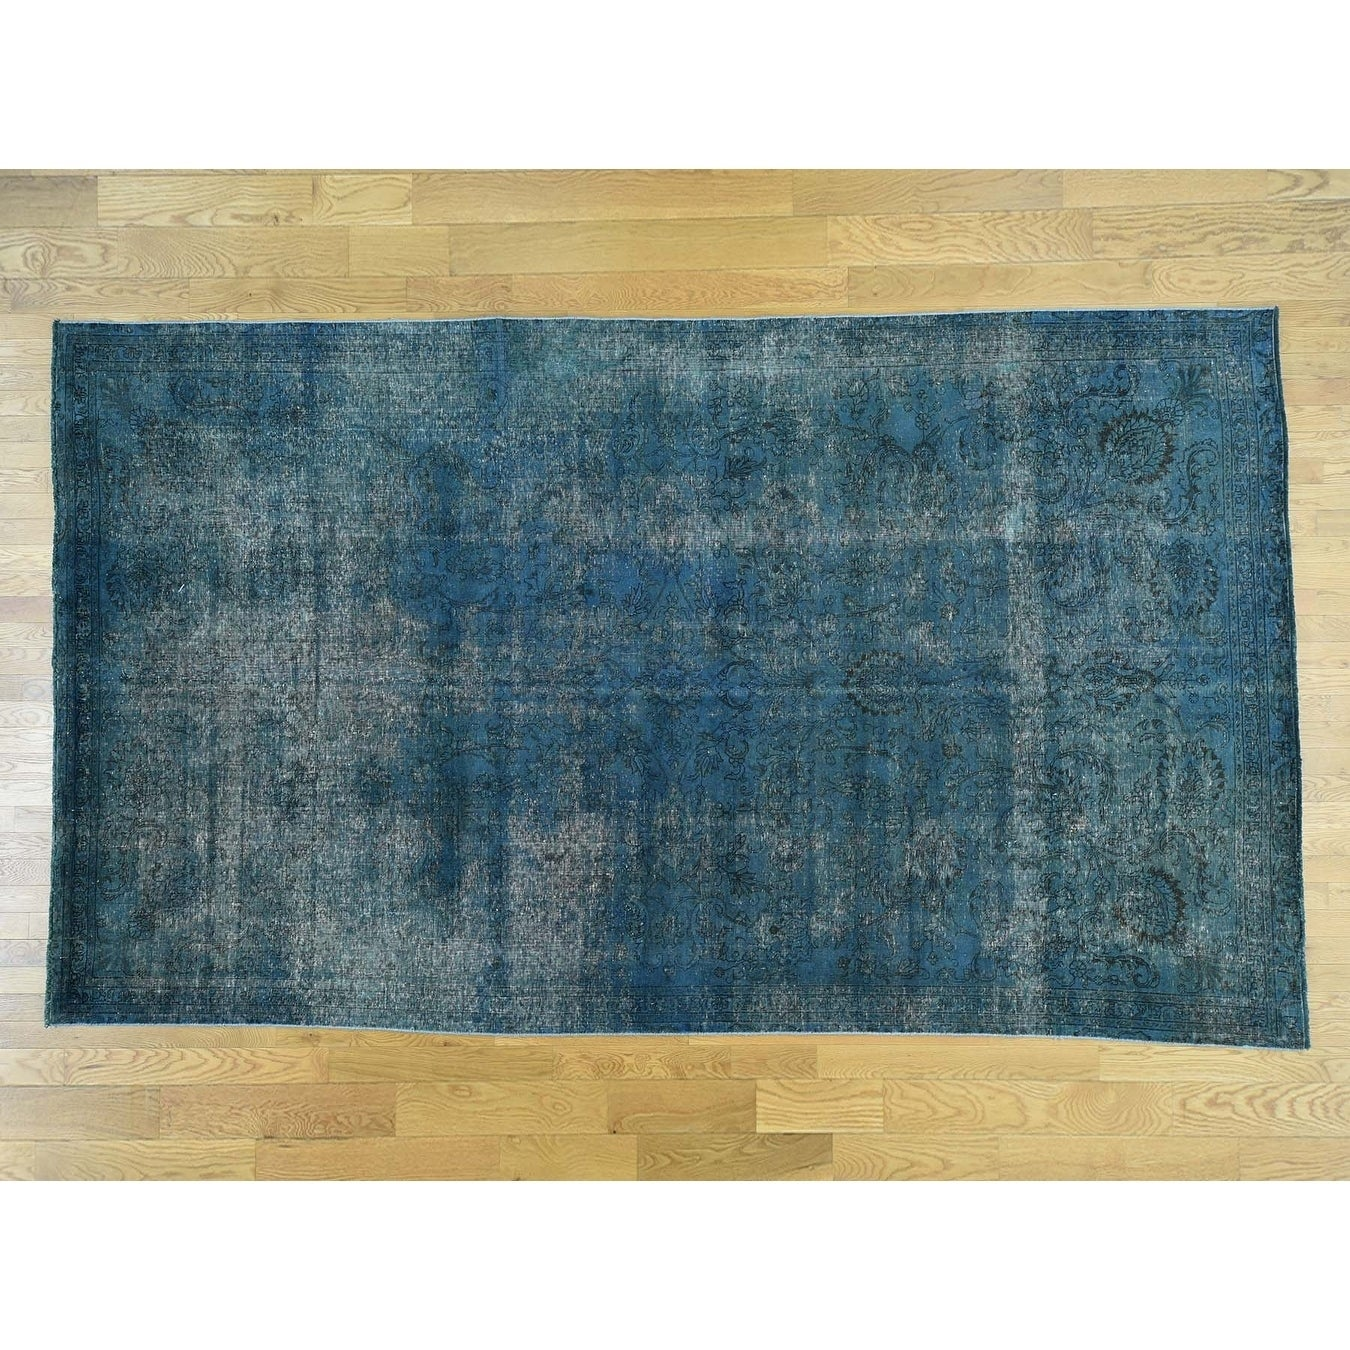 Hand Knotted Blue Overdyed & Vintage with Wool Oriental Rug - 74 x 129